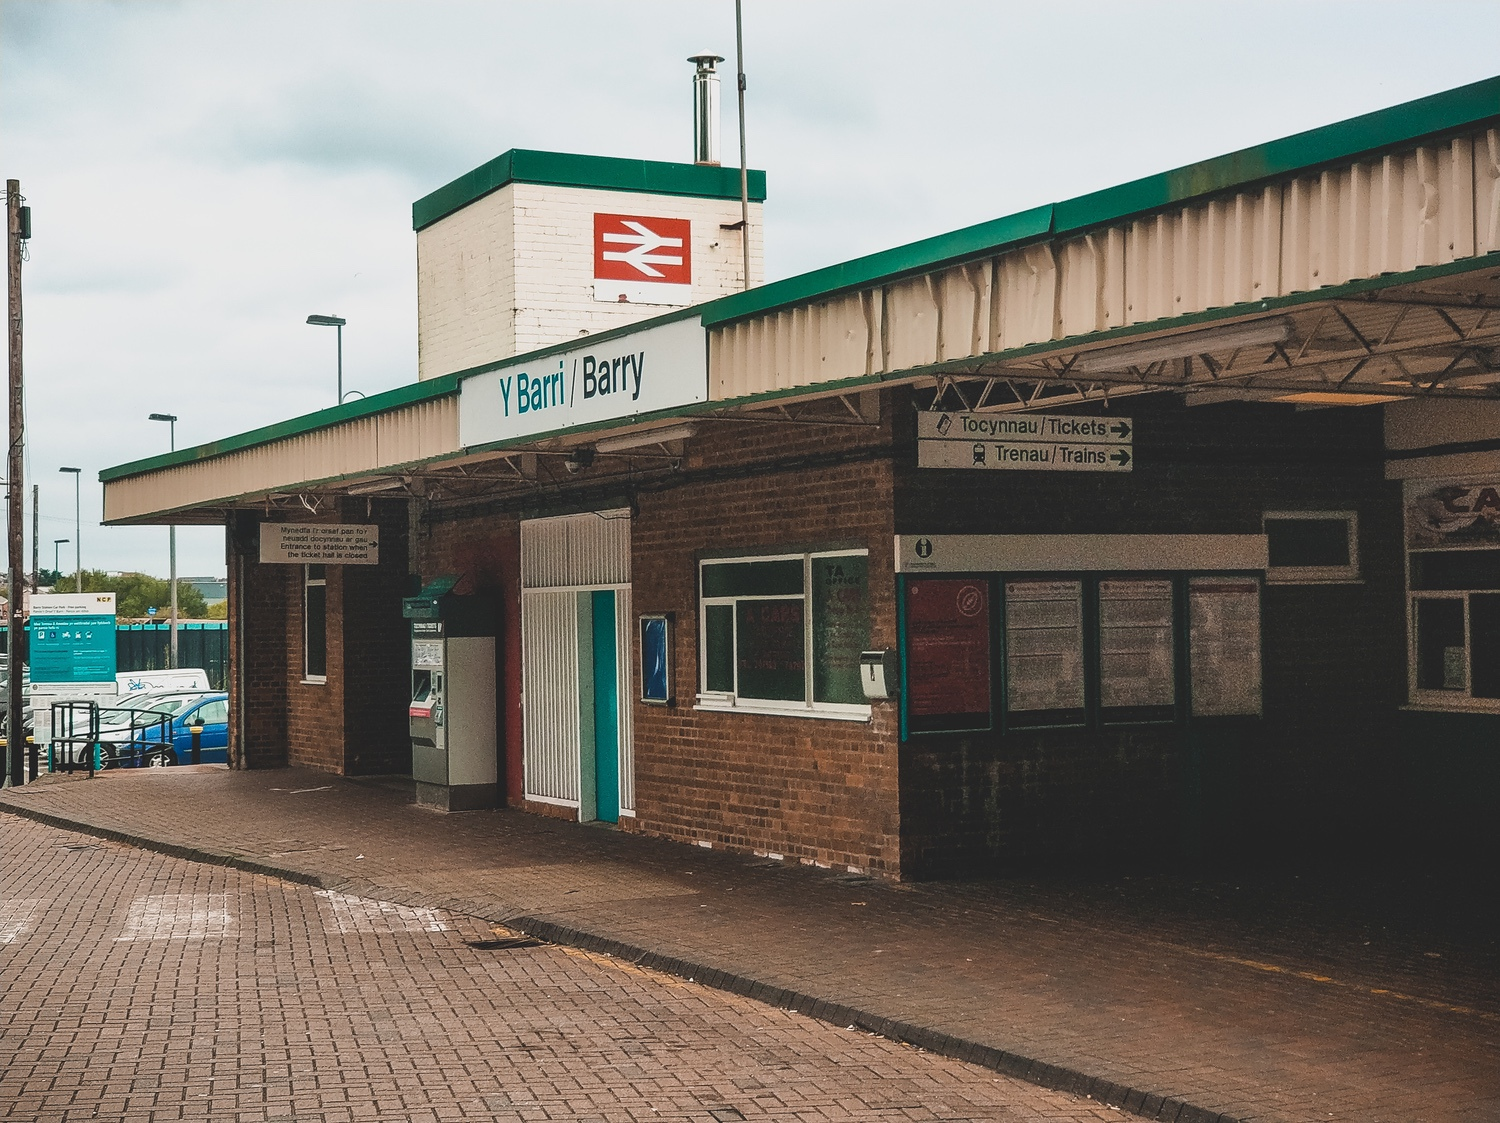 The outside of Barry station